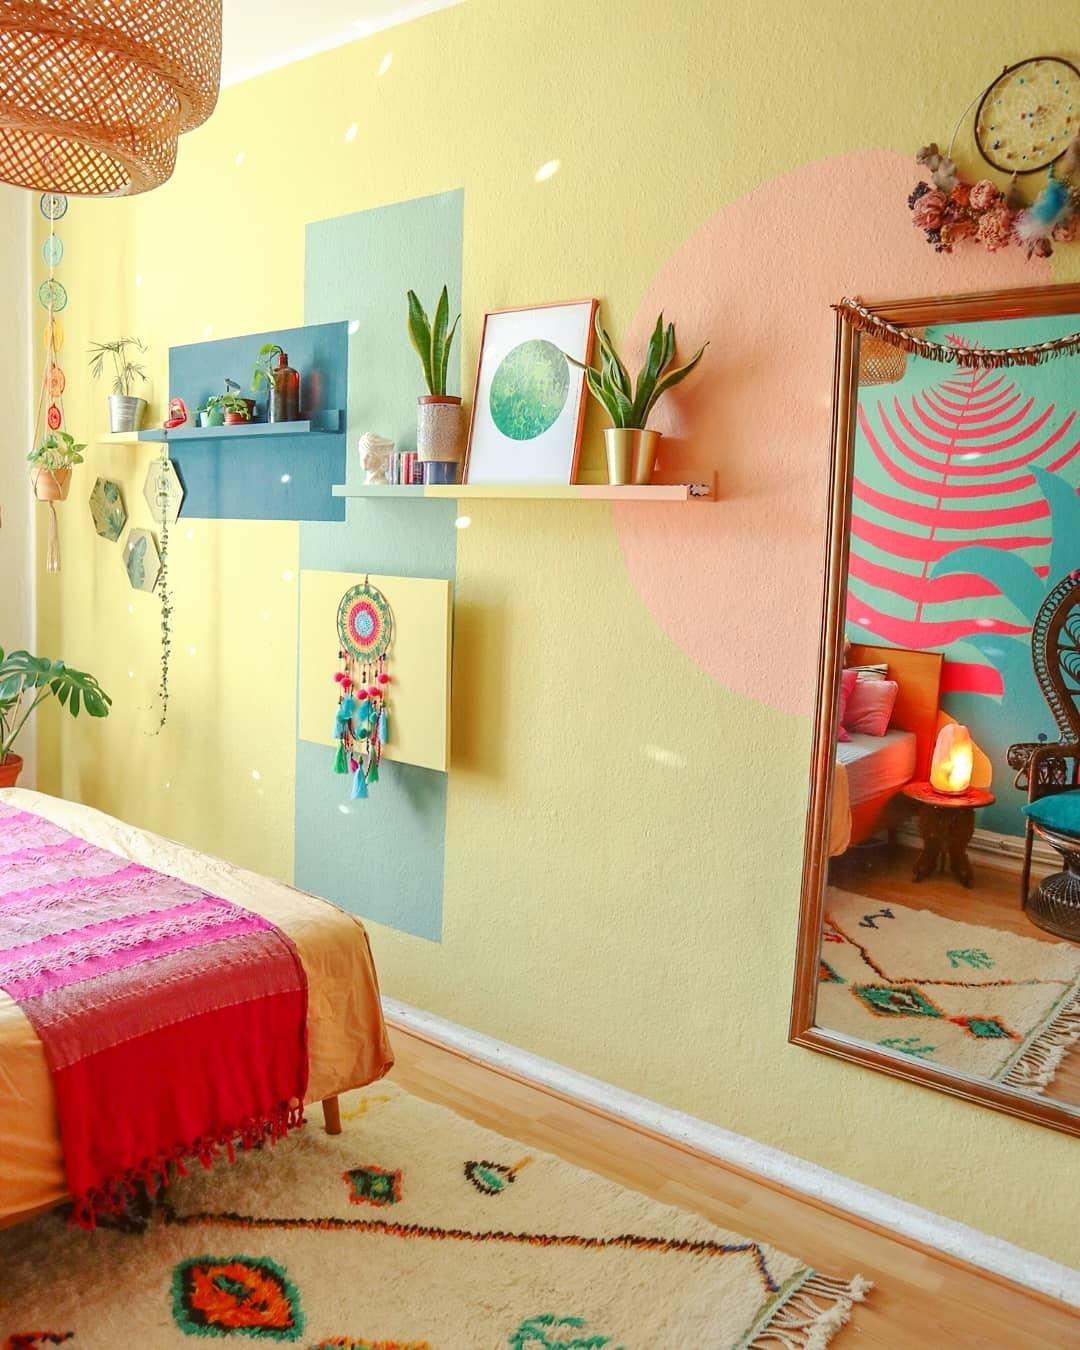 Bedroom colorful bedroomgoals  e2df3e8c 4cc3 455e 824f ca1c208713a6